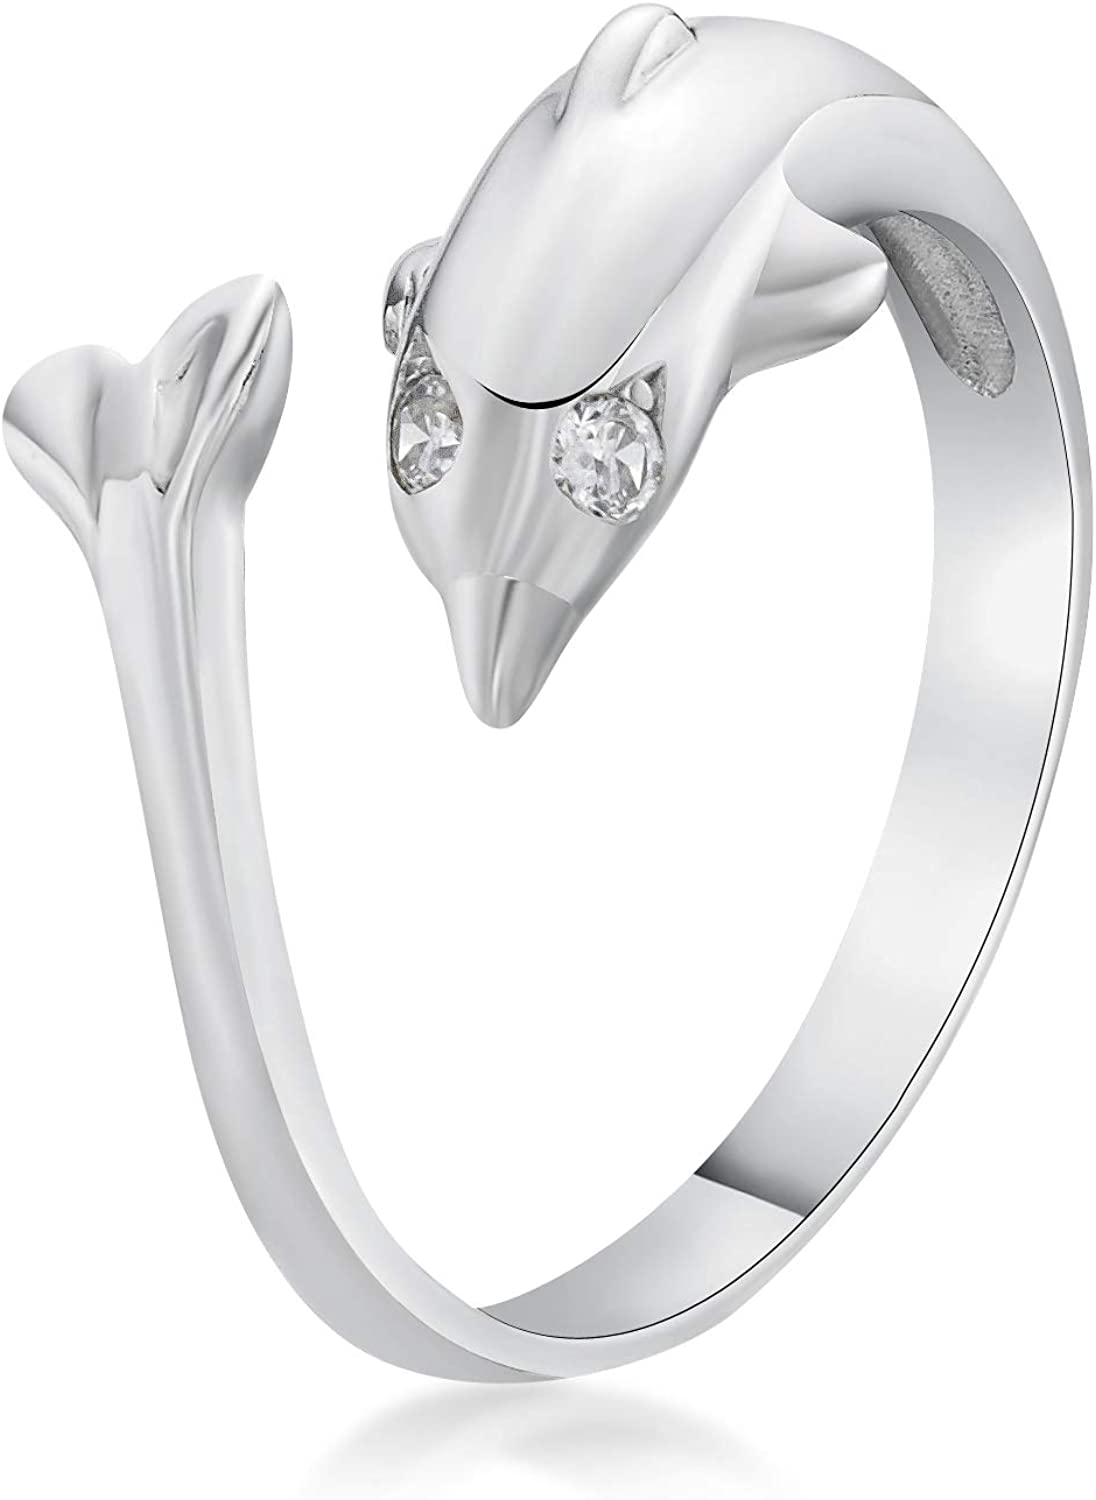 Cubic Zirconia Adjustable Dolphin Toe Ring in 10k Yellow or White Gold 2 mm Wide by Lavari Jewelers